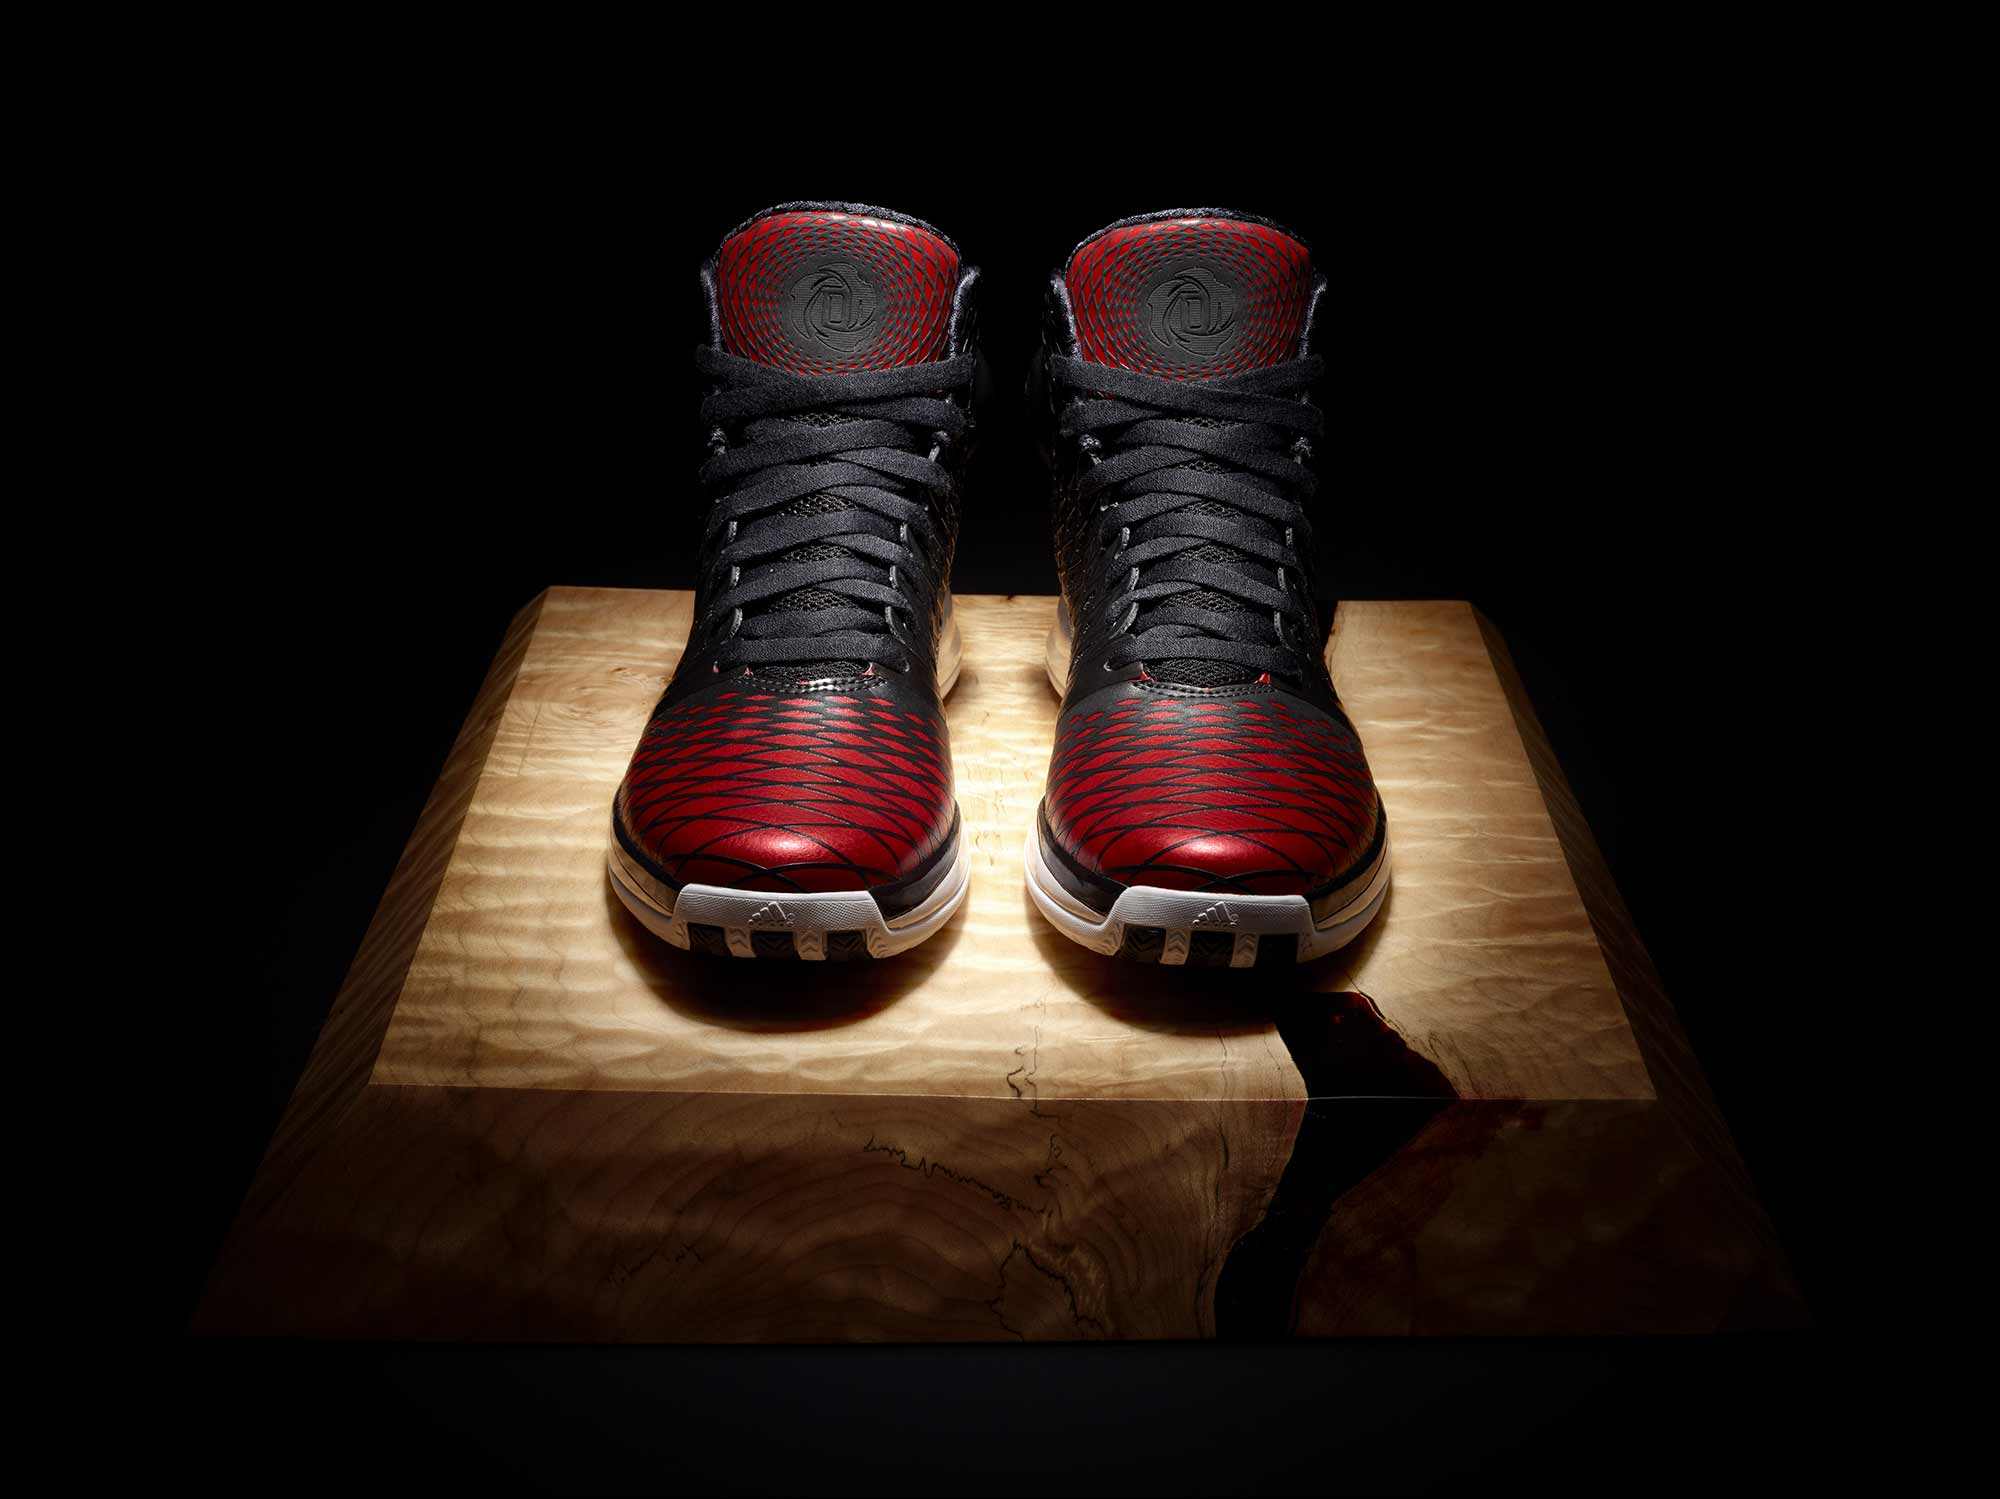 new arrival e8972 64883 adidas and Derrick Rose launch D Rose 3.5 Signature Basketball Shoe